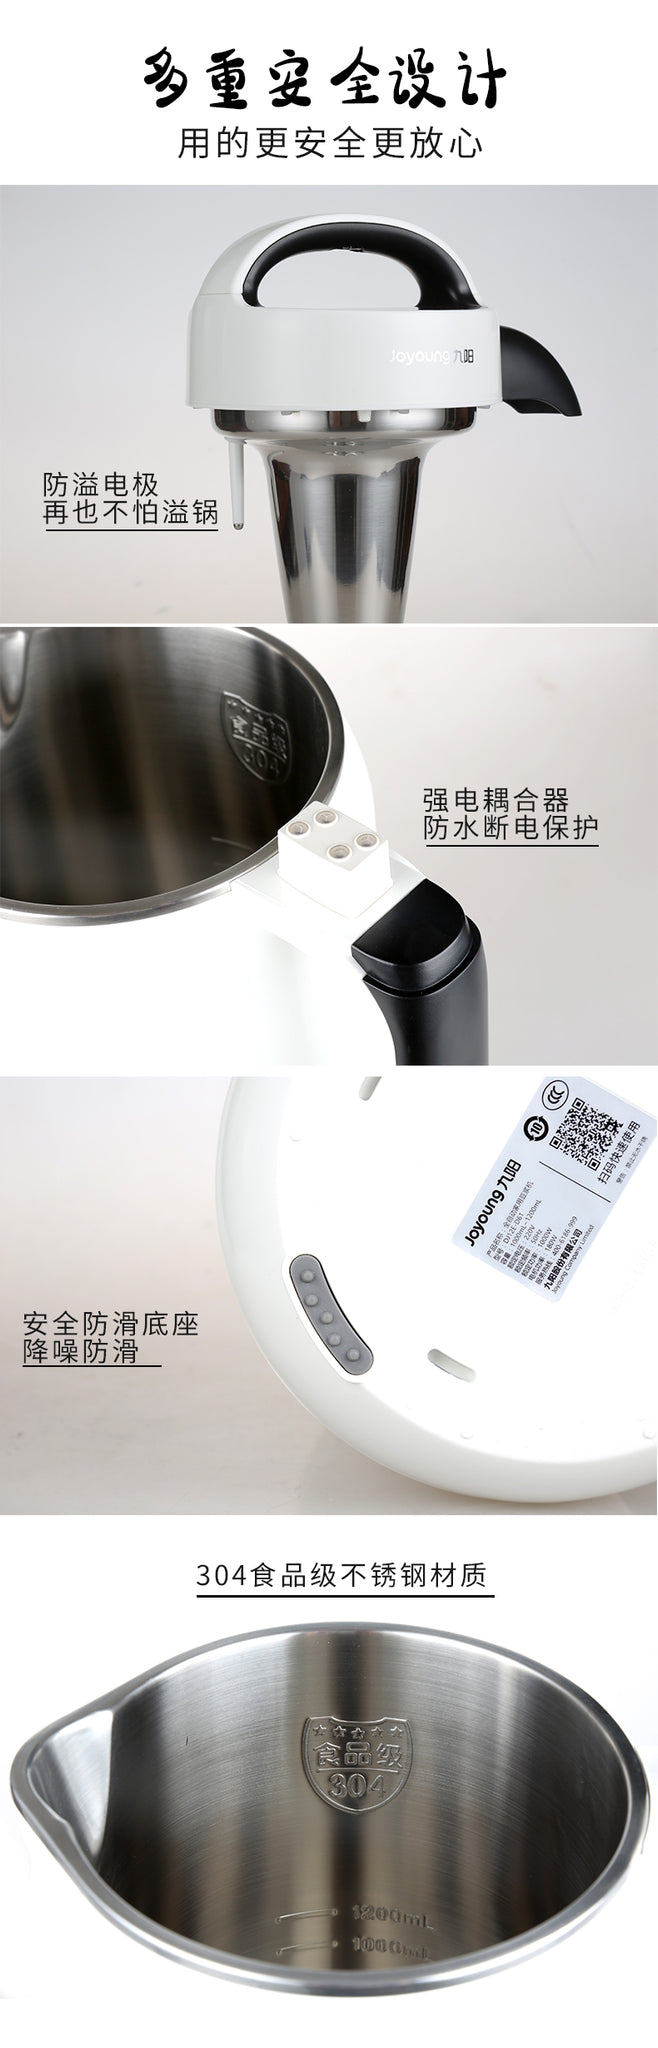 Joyoung/九阳 DJ12E-D61 1.2L Soybean Maker/ Automatic/ Multi-function/ Intelligent/SG Plug/ 1 Year SG Warranty